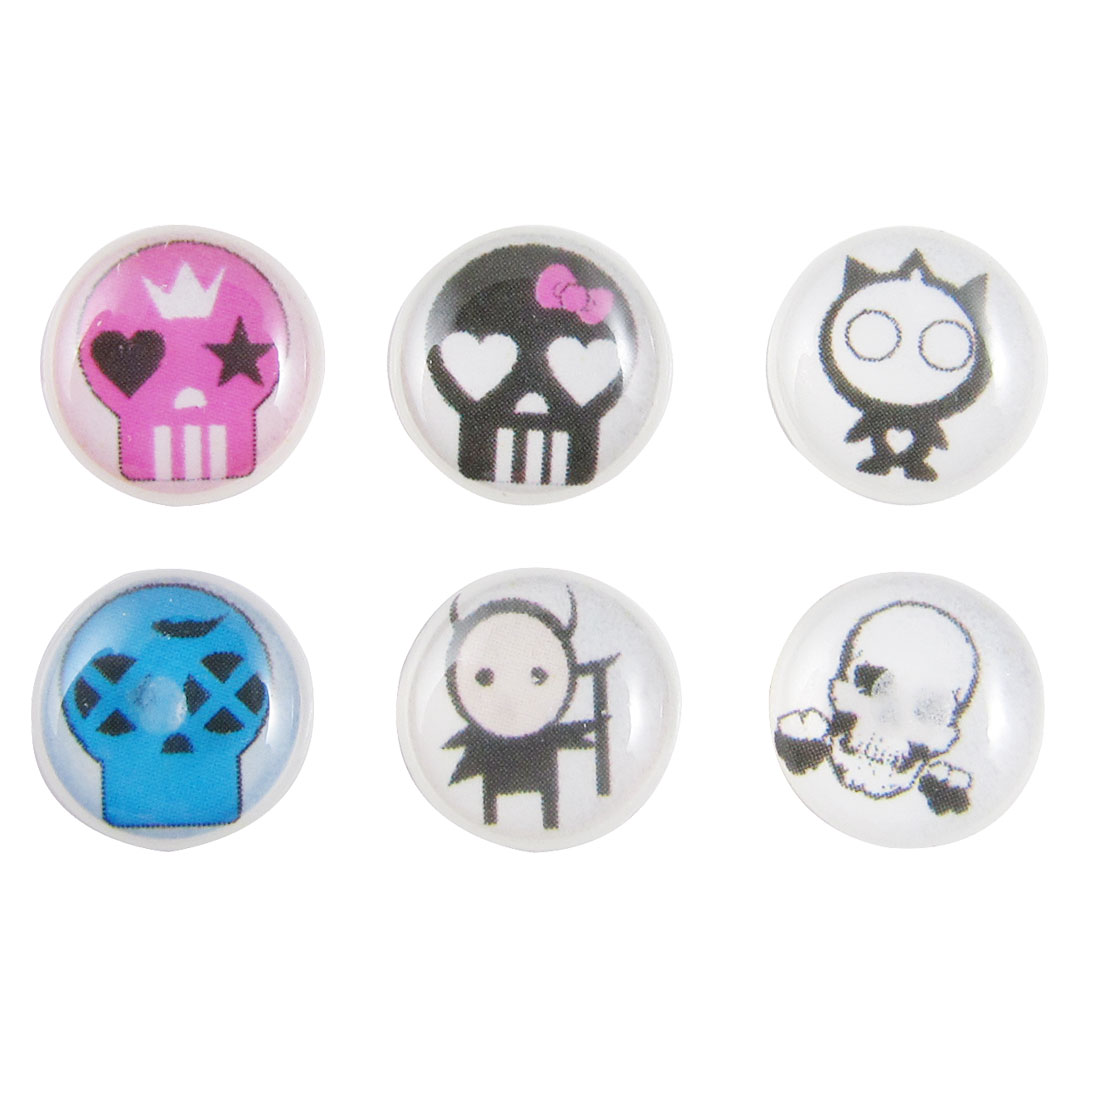 Skull Design Home Button Stickers 6 in 1 for Cell Phone